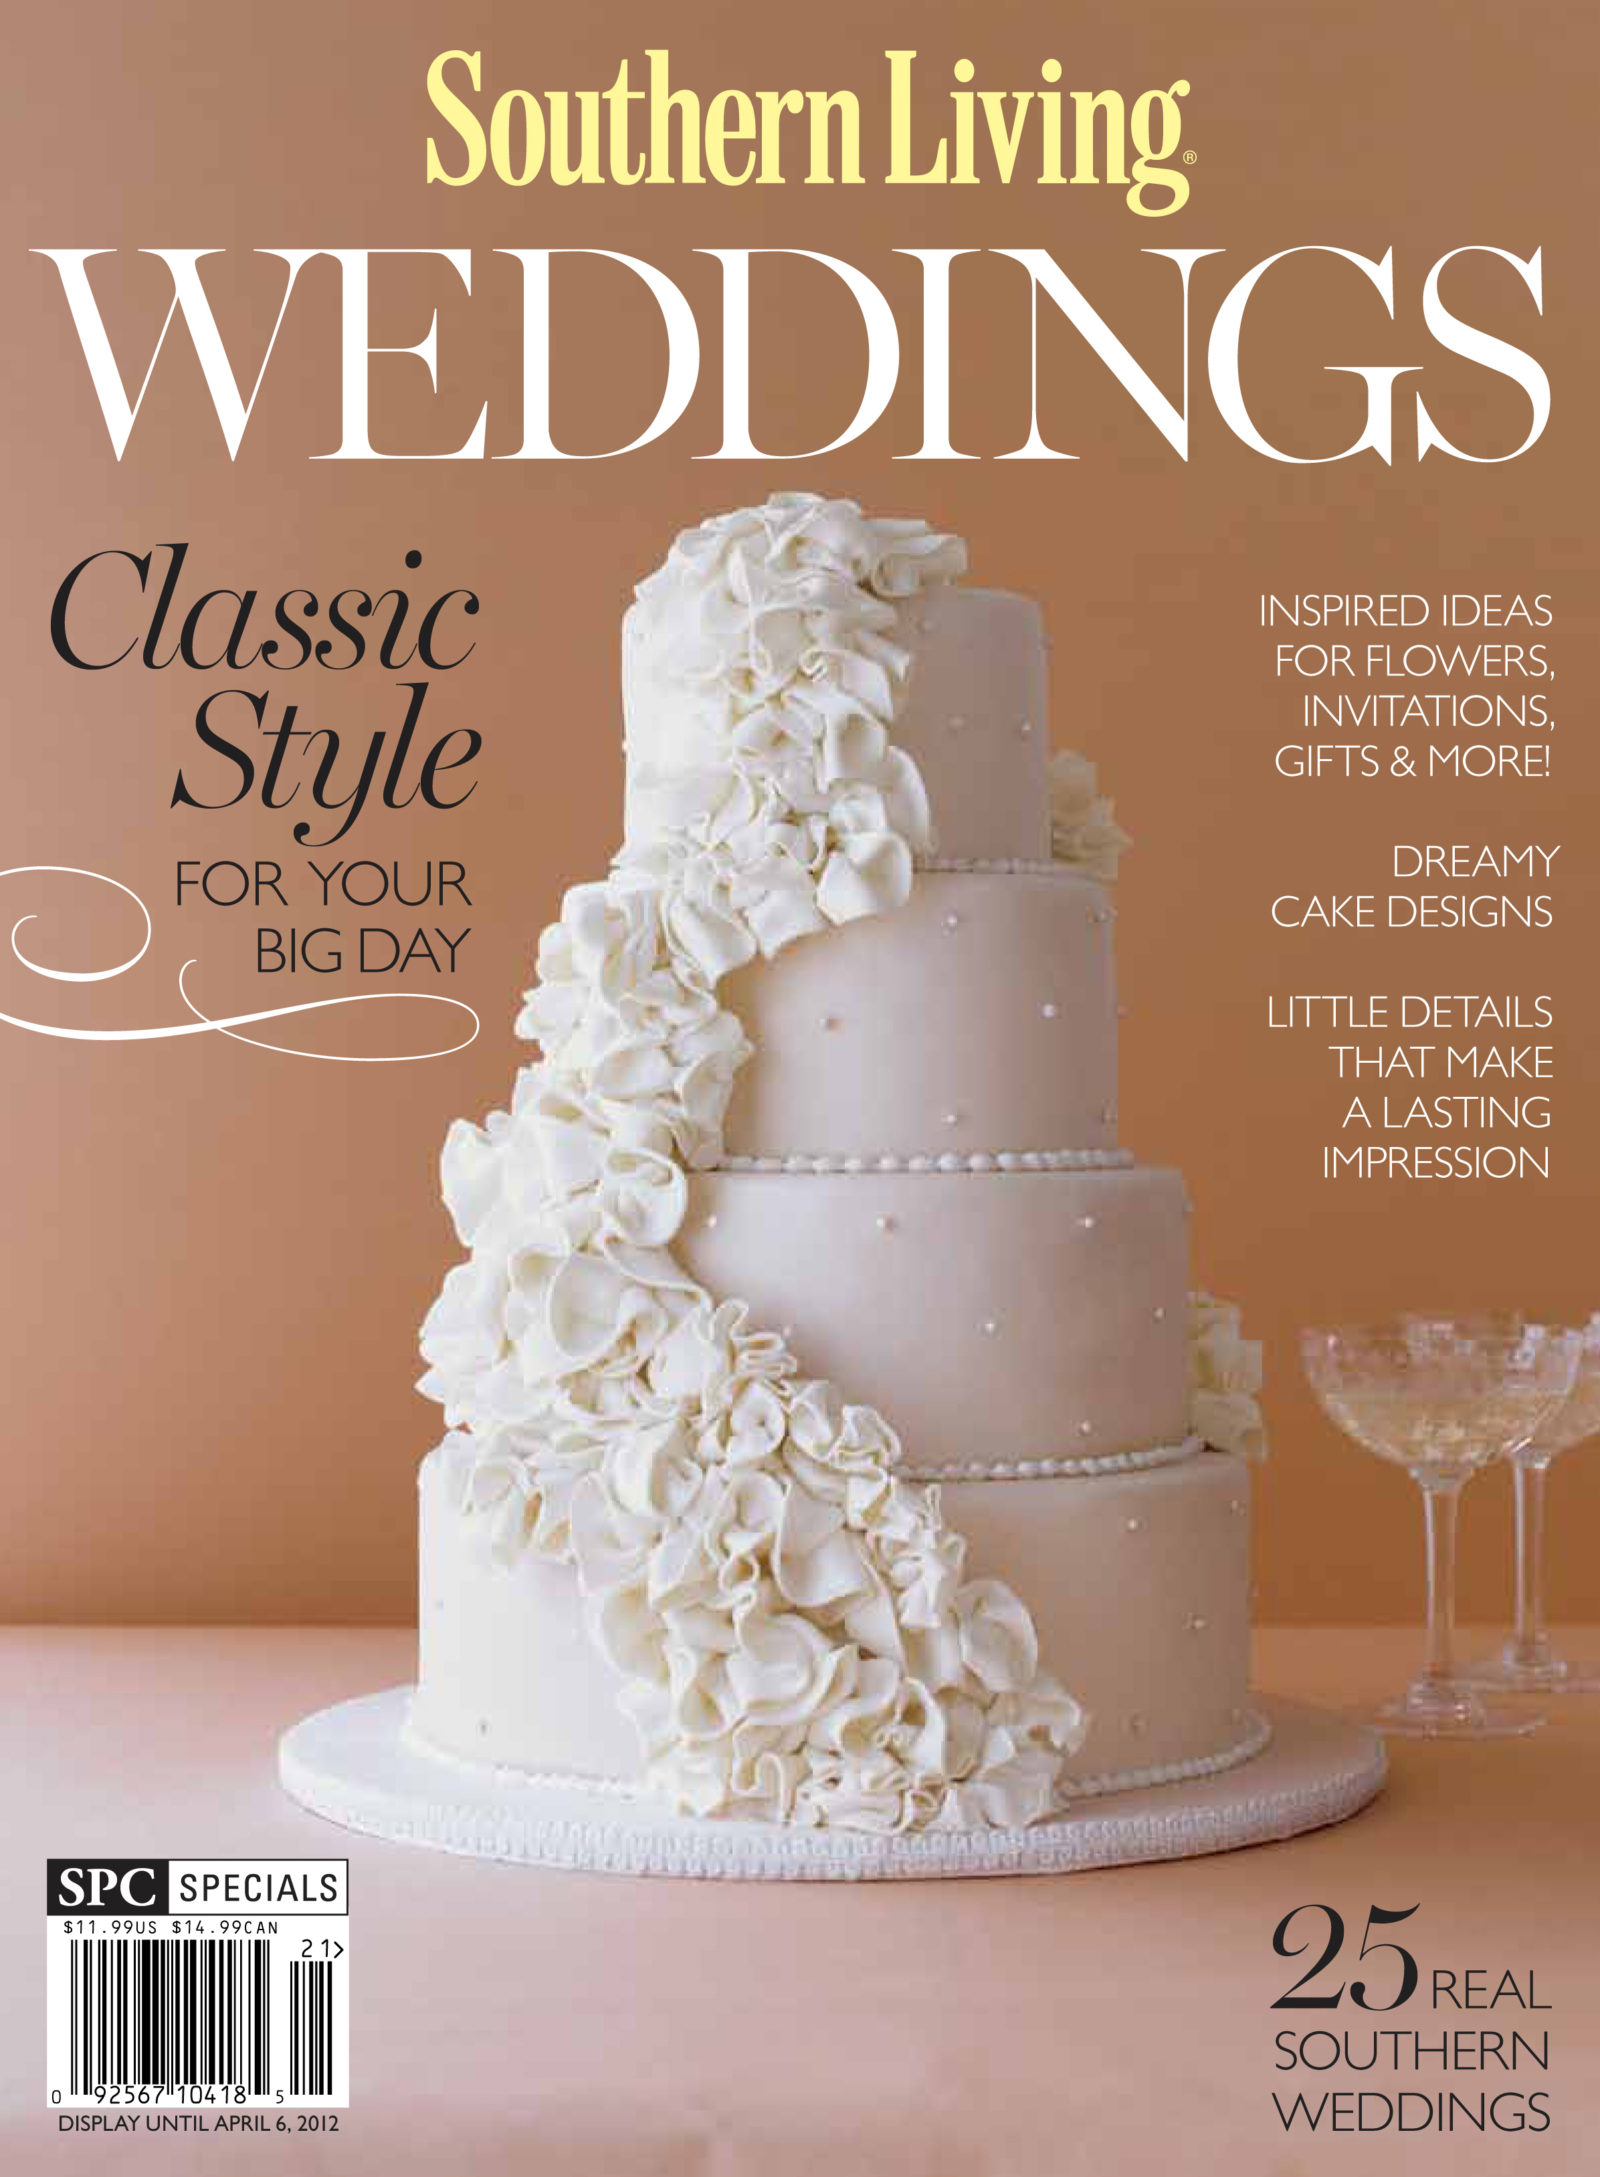 43-Southern-Living-Weddings-2011